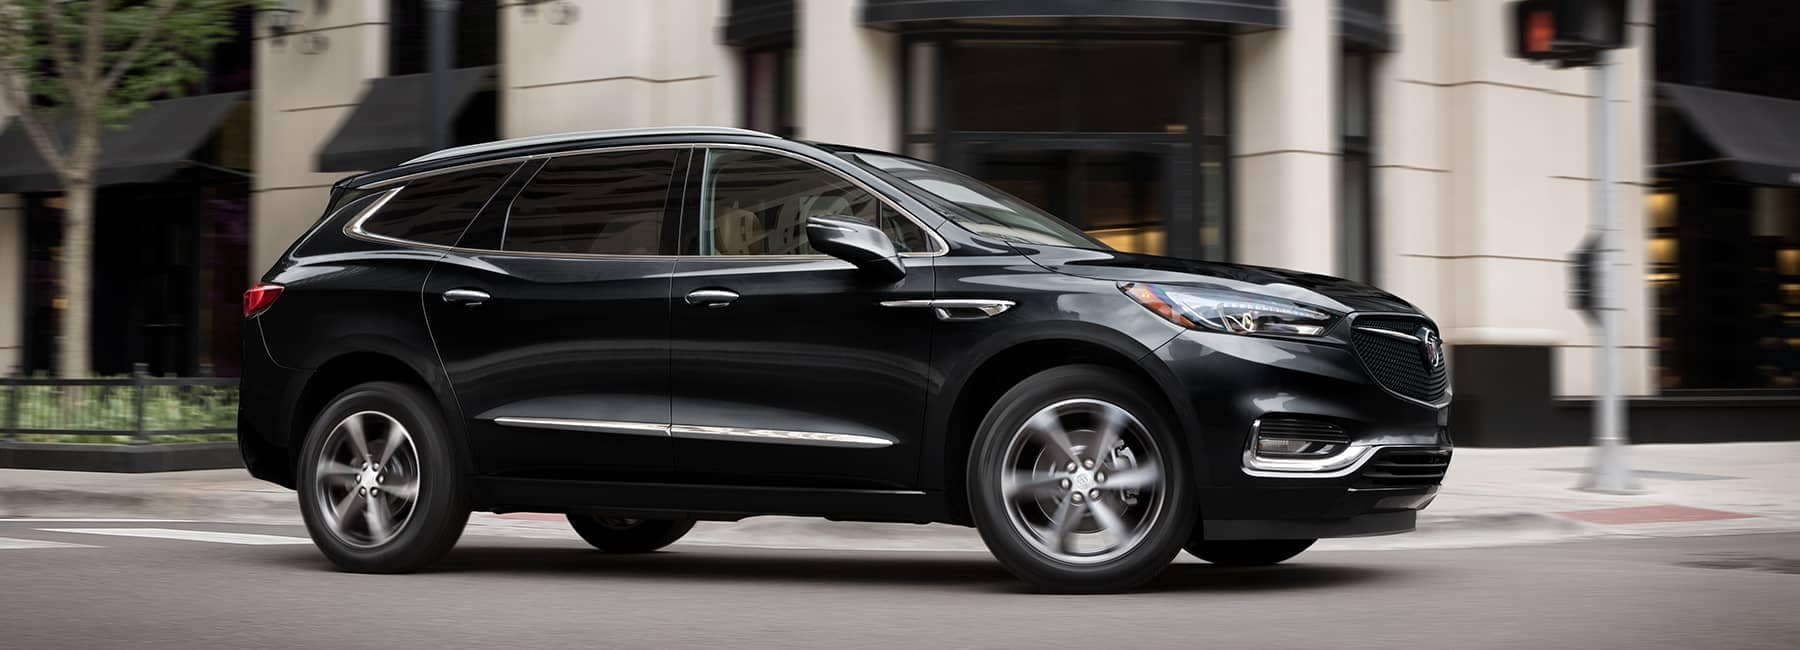 Black 2020 Buick Enclave drives through intersection